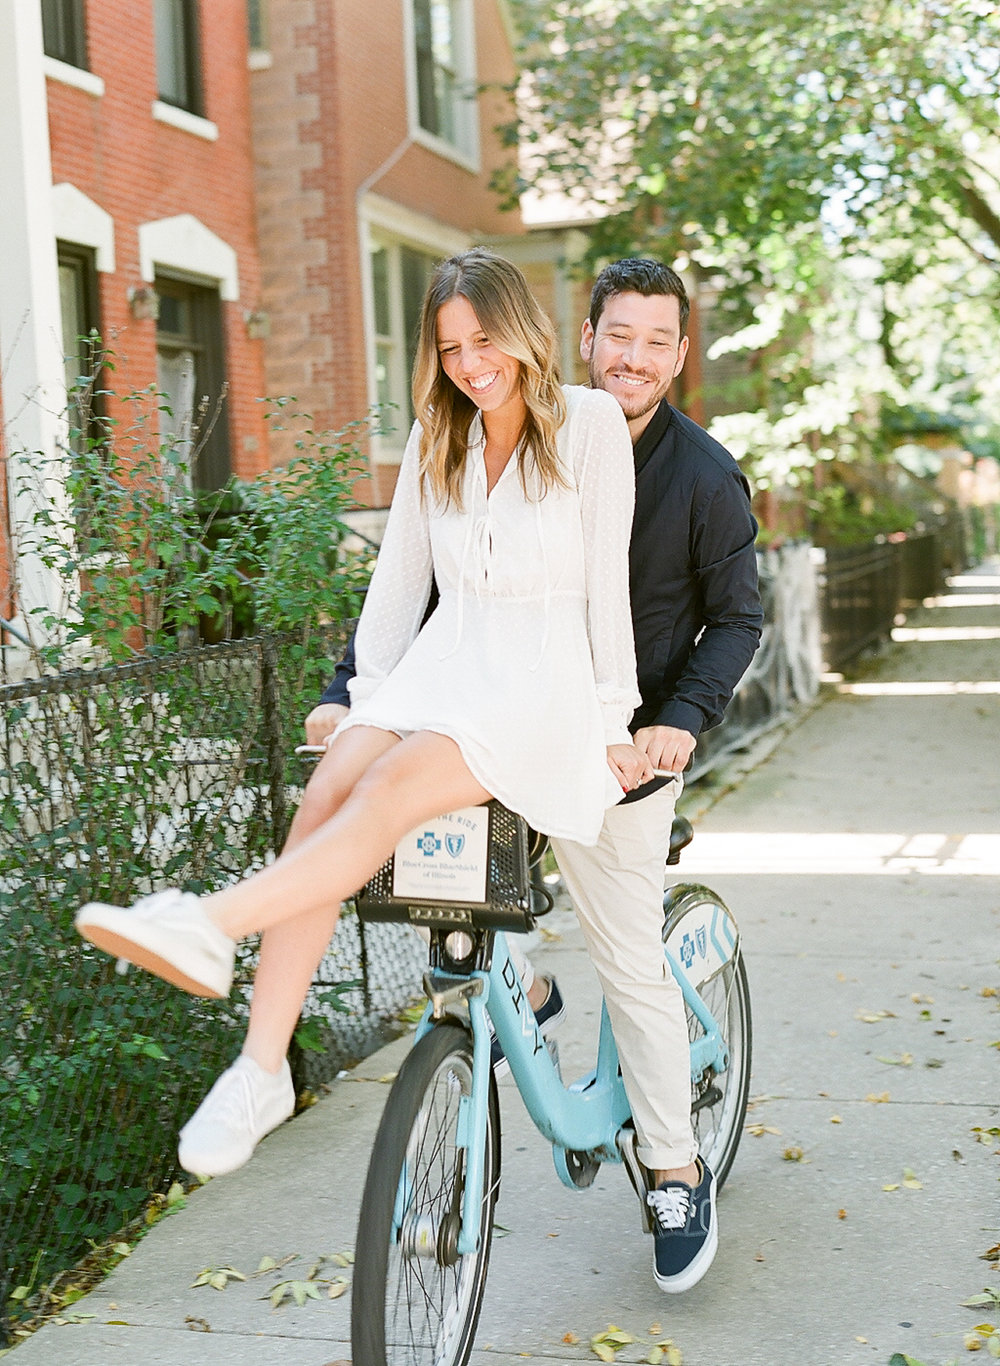 Bonphotage Fine Art Engagement Photography - Wicker Park Chicago